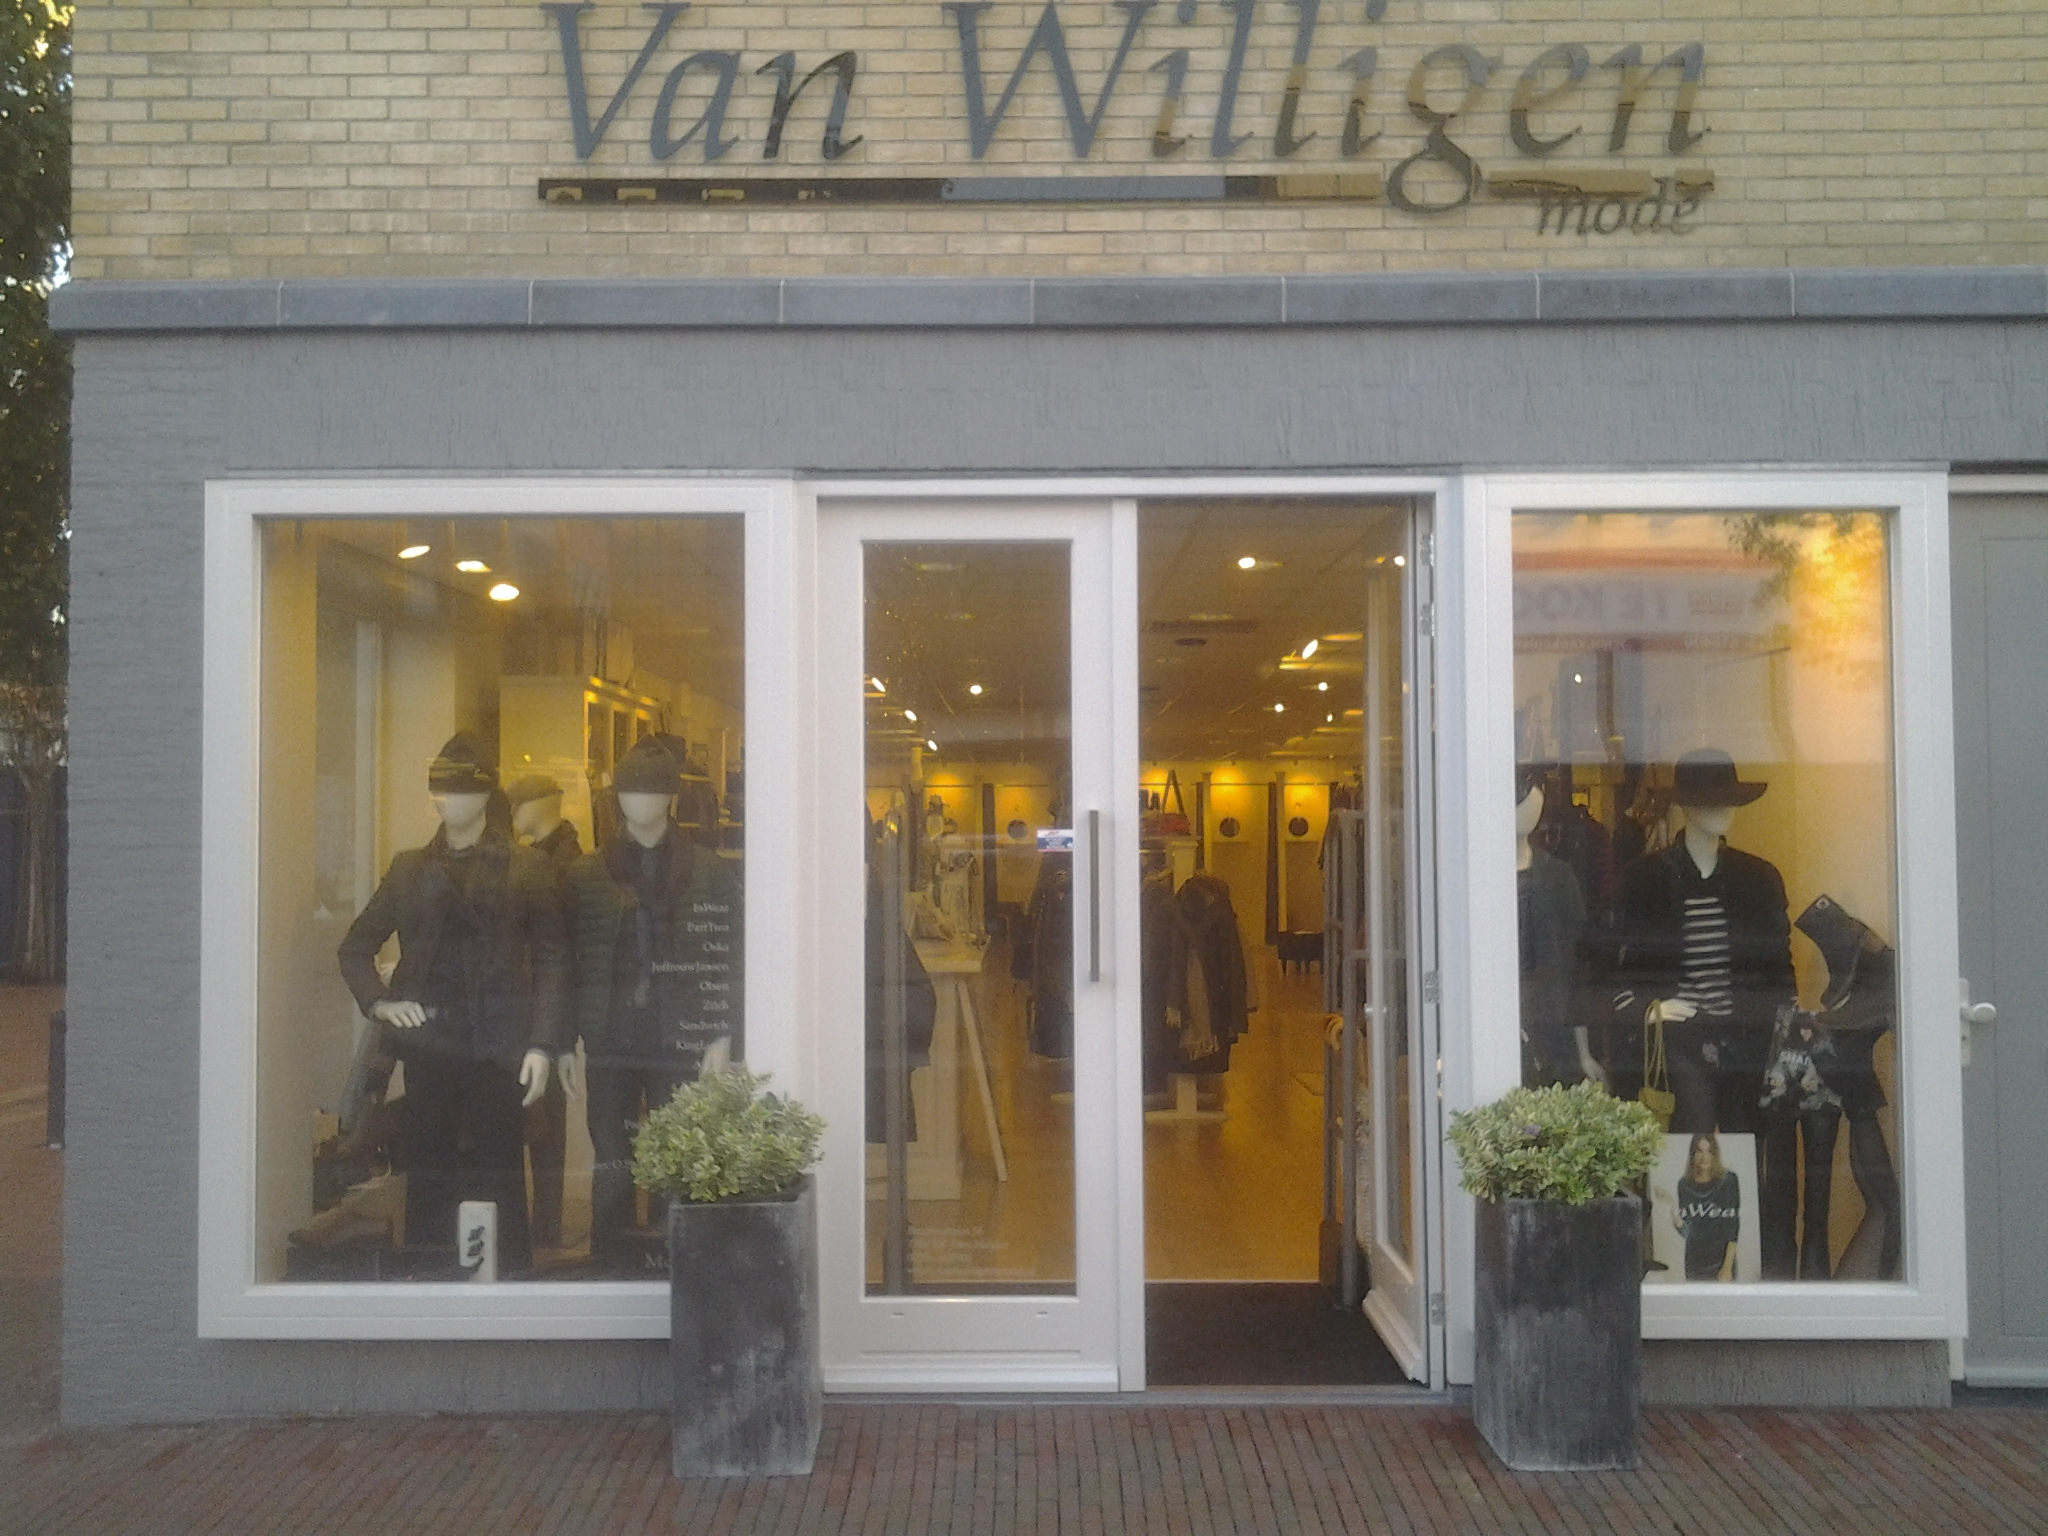 Van Willigen Mode | Beatrixstraat 56, 1781 EP Den Helder